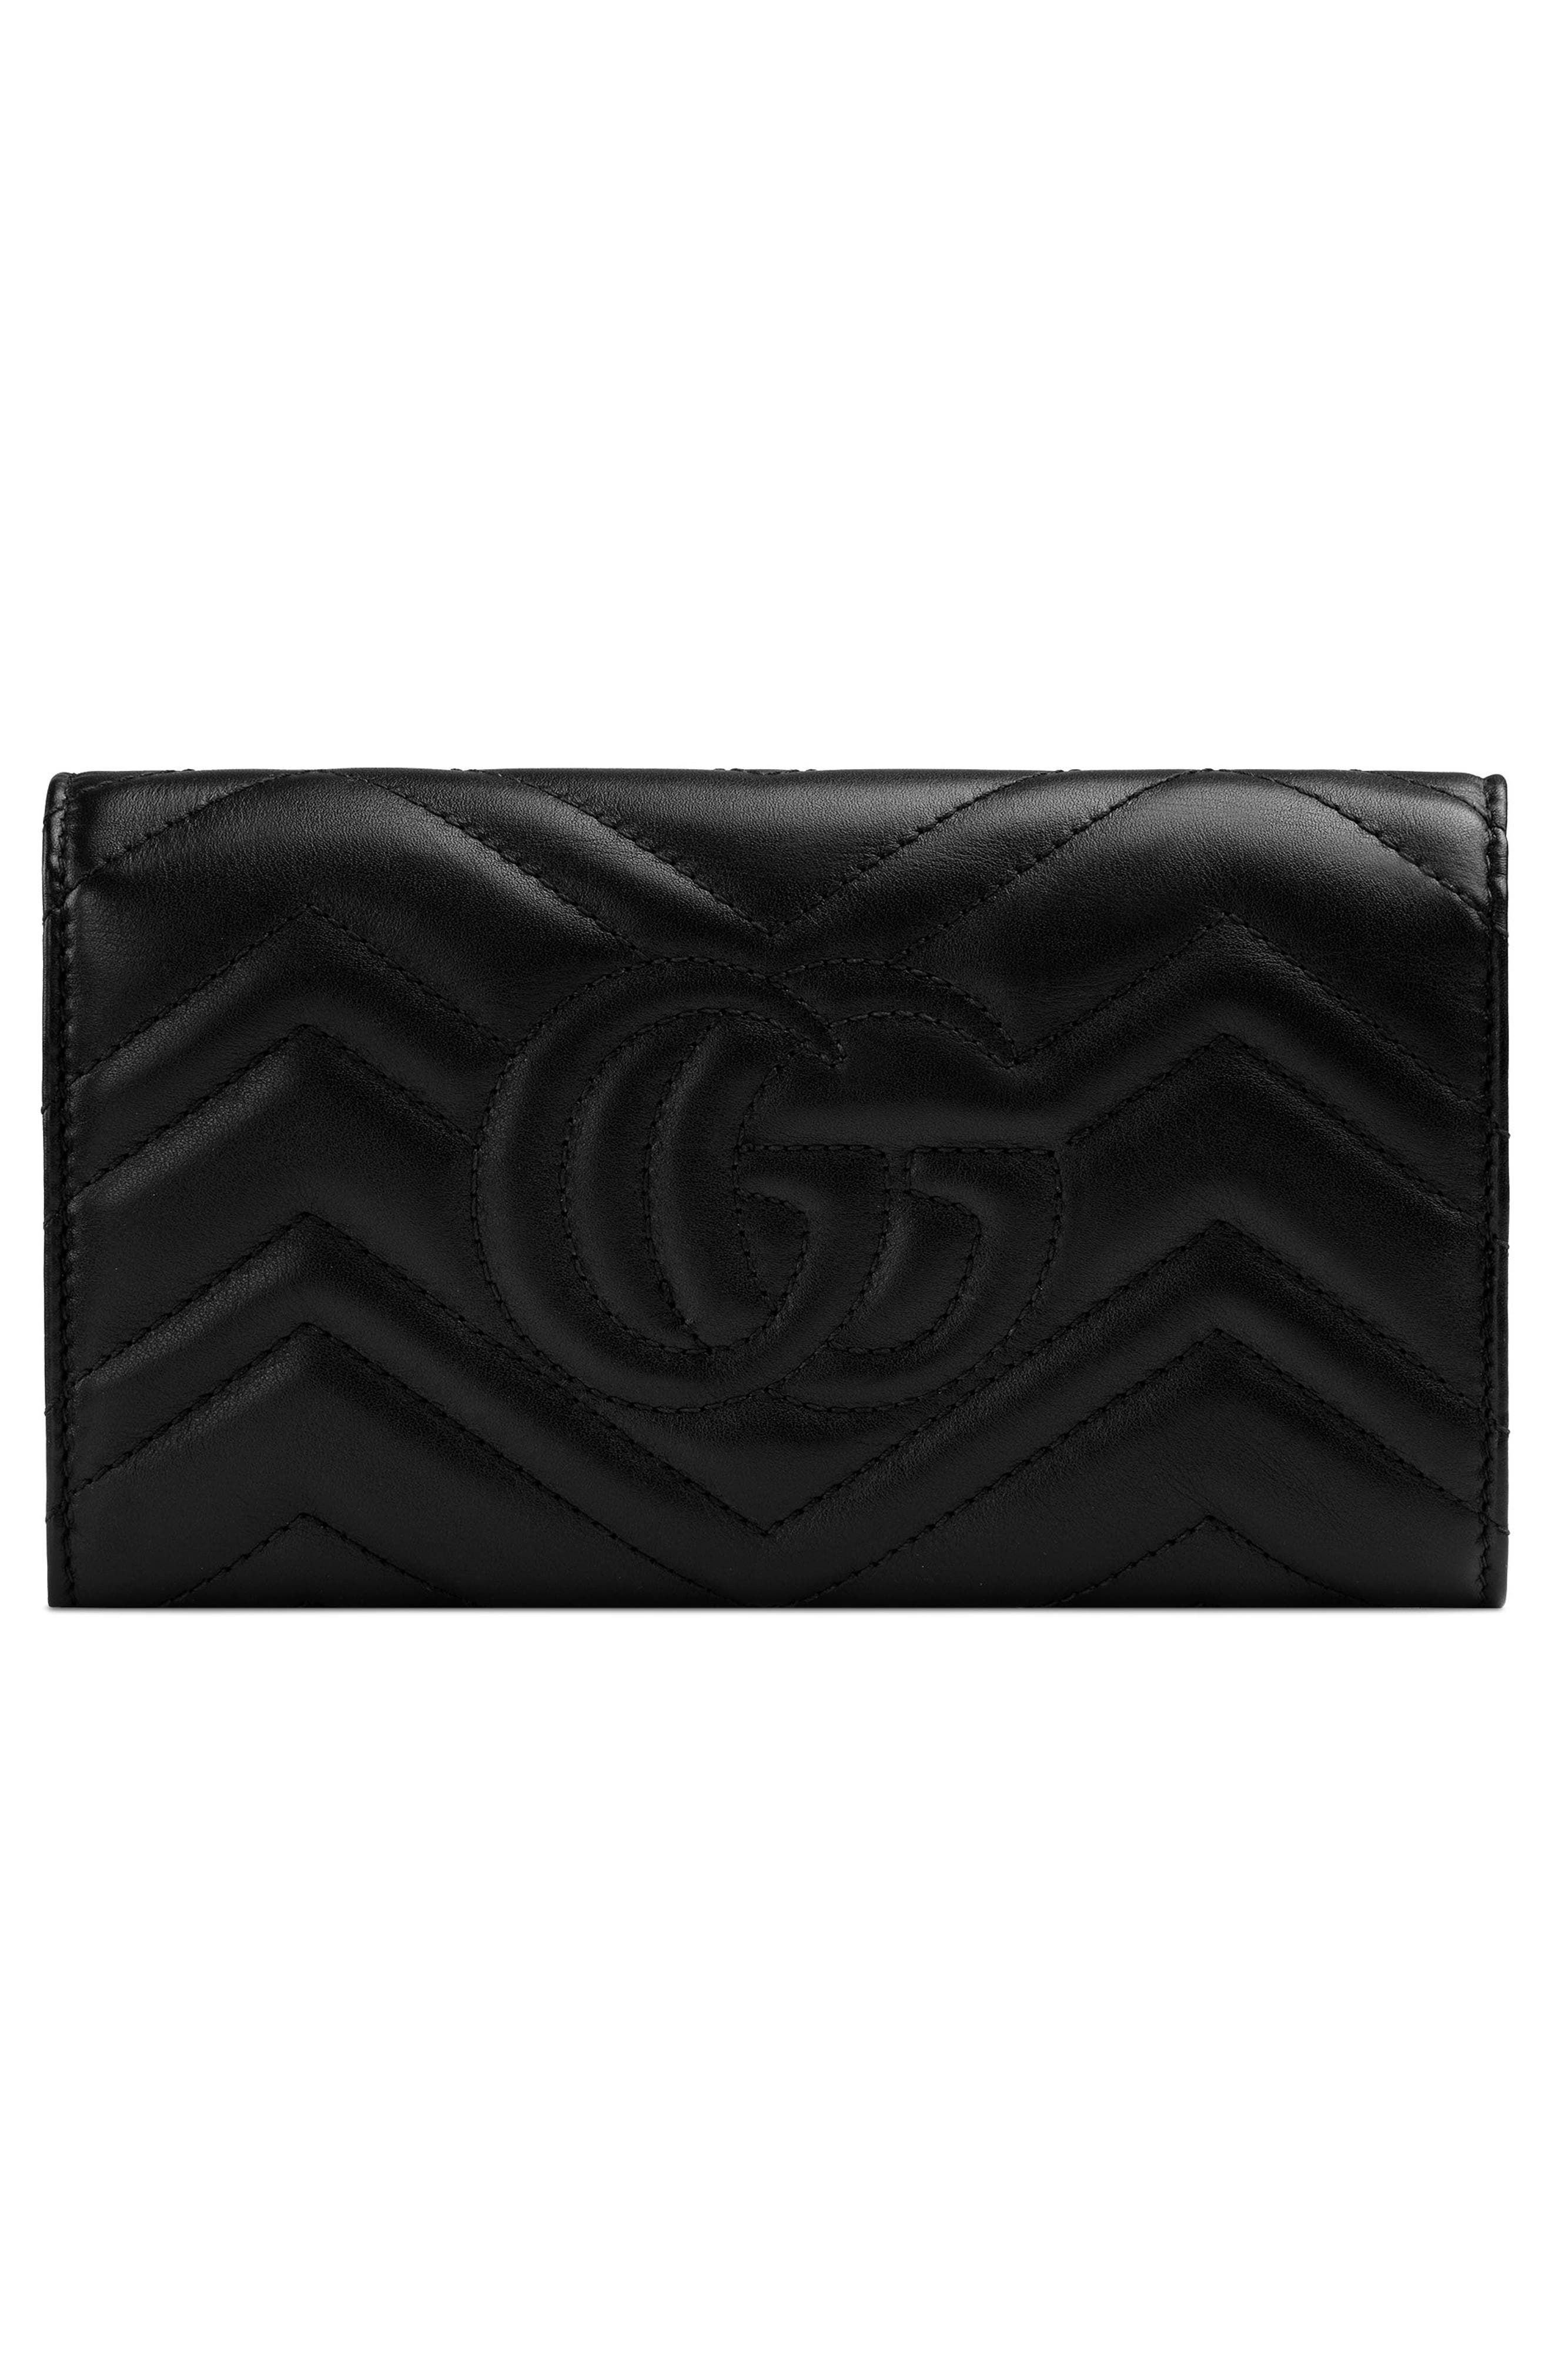 Marmont 2.0 Leather Continental Wallet,                             Alternate thumbnail 3, color,                             NERO